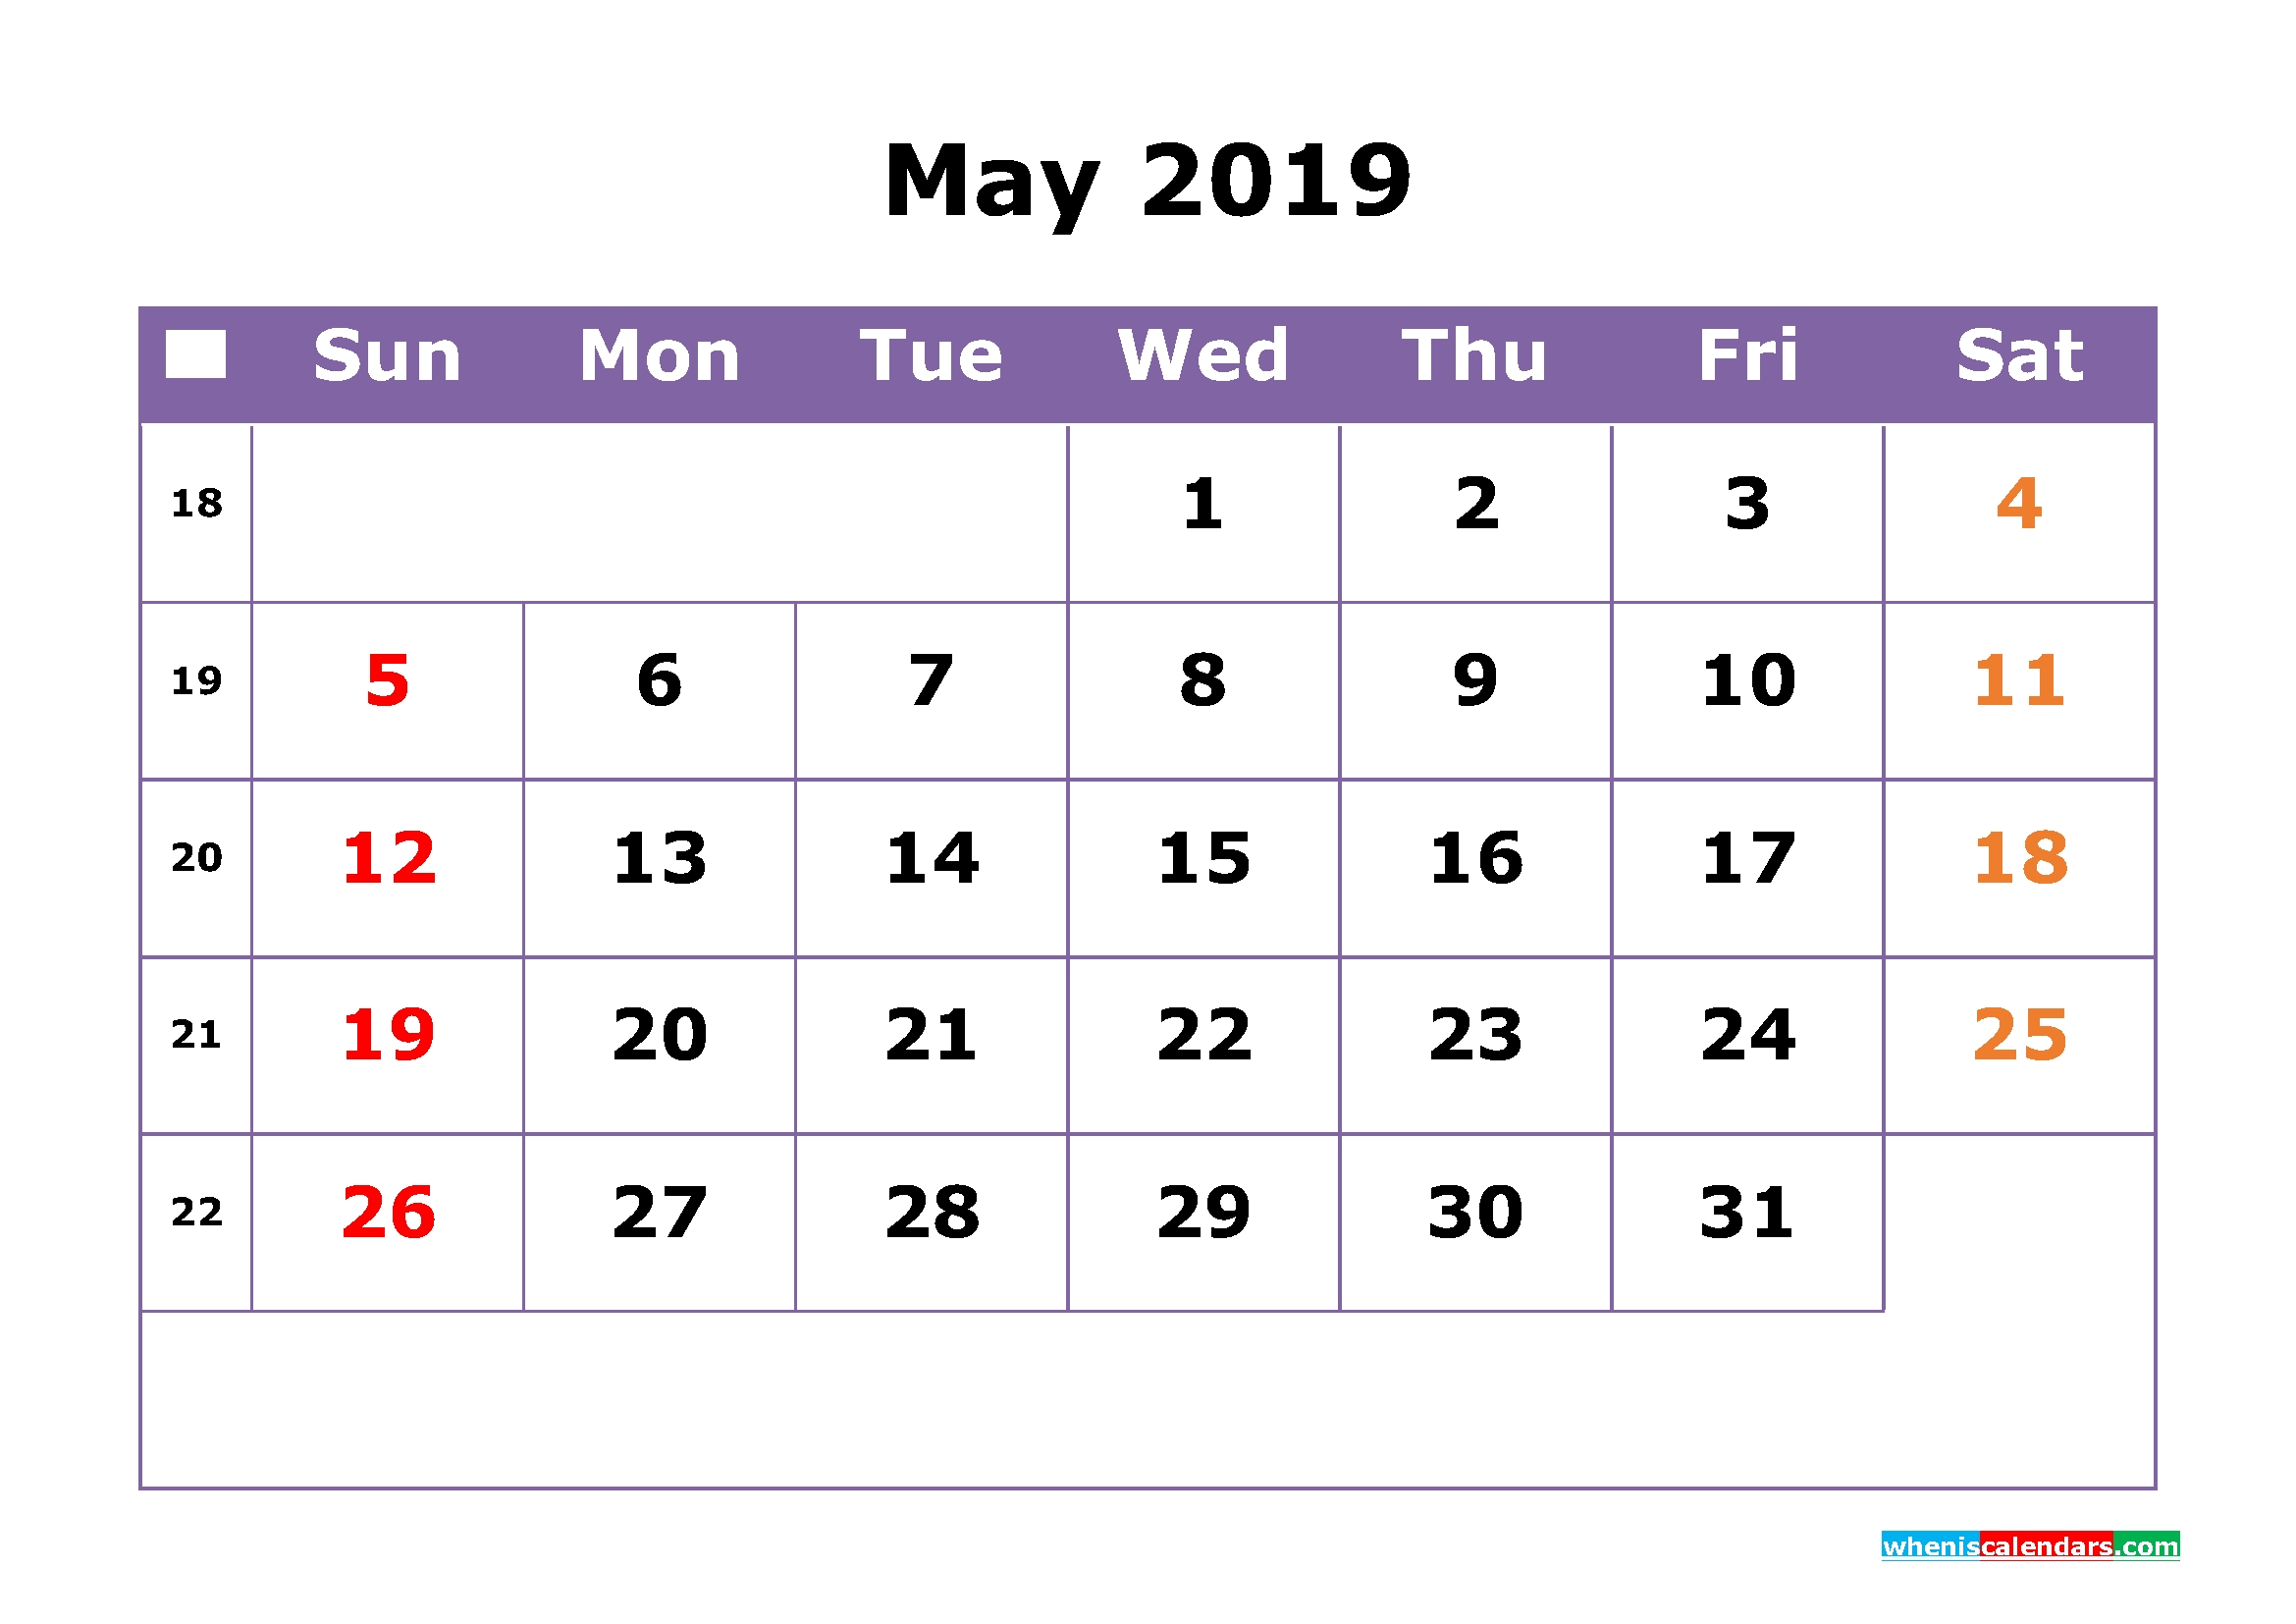 May 2019 Printable Calendar With Week Numbers For Free Download with regard to Calendar By Week With Printable